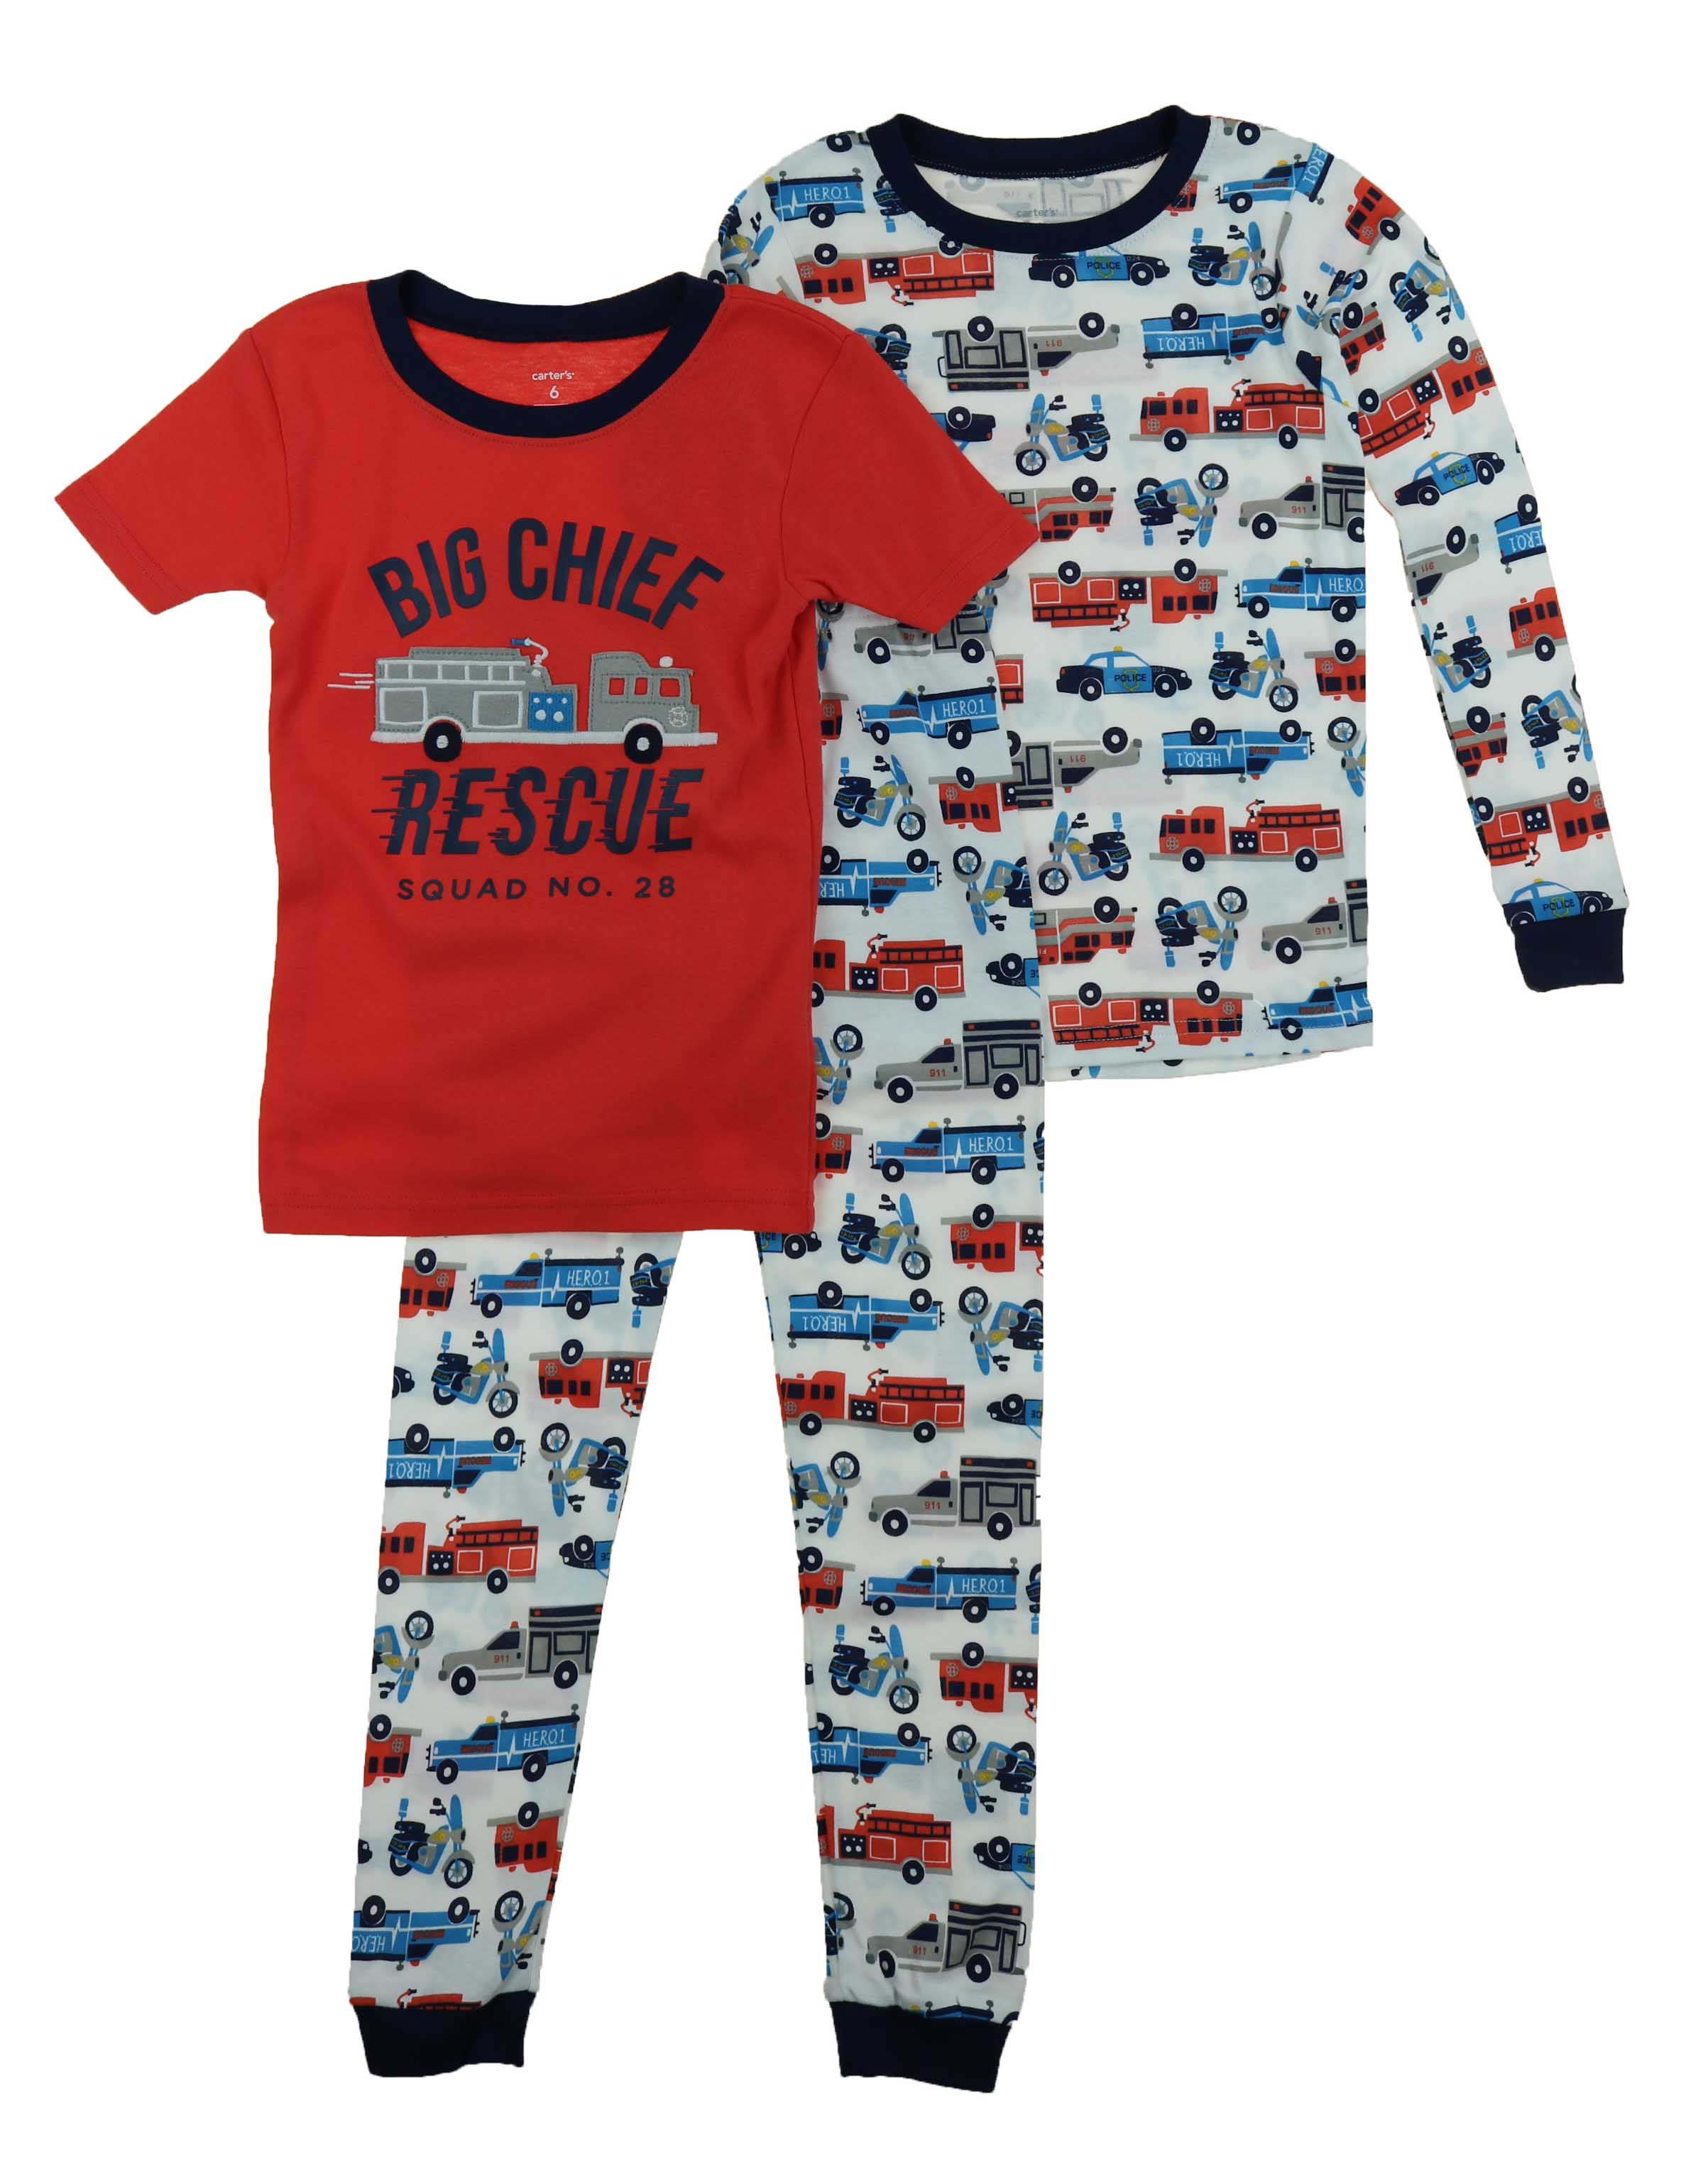 6a091cb48fbc Carters Little Boys 3 Piece Jersey Cotton Pajama Sleepwear Set